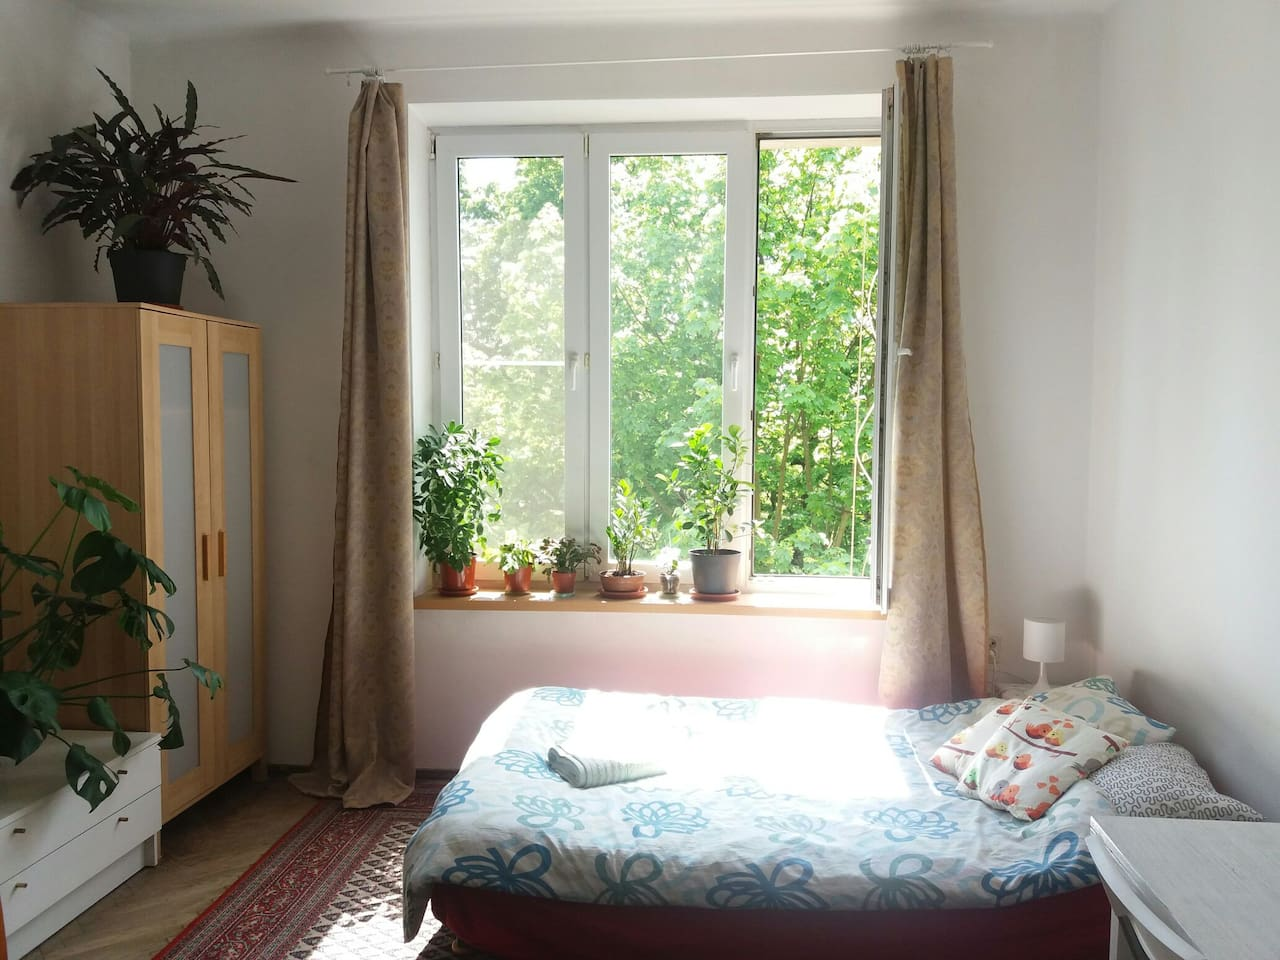 Room overlooking green spaces with many plants inside